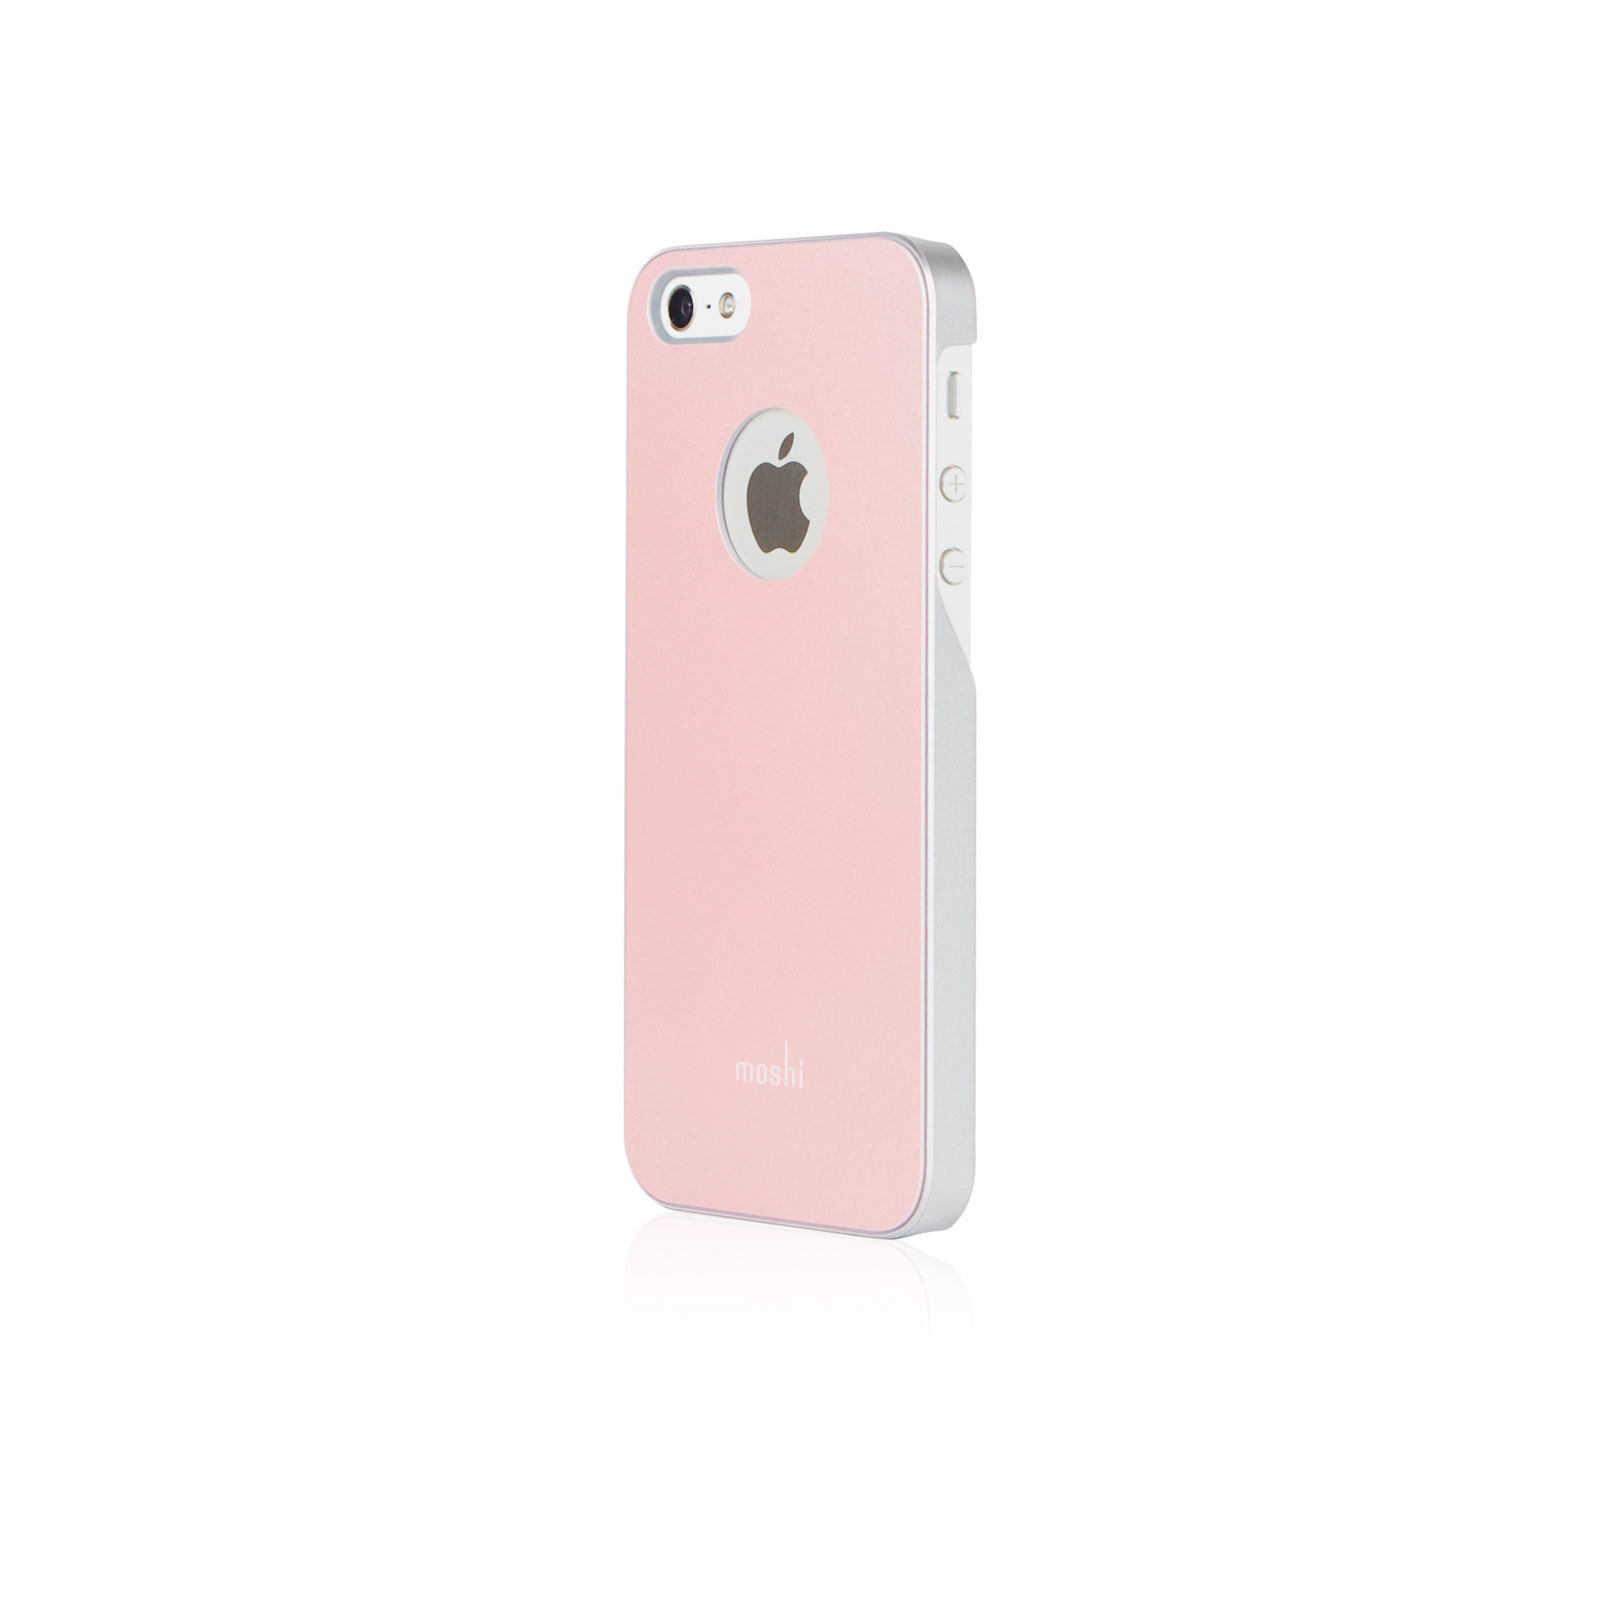 promo code 30068 f3c5d iGlaze for iPhone SE/5s/5